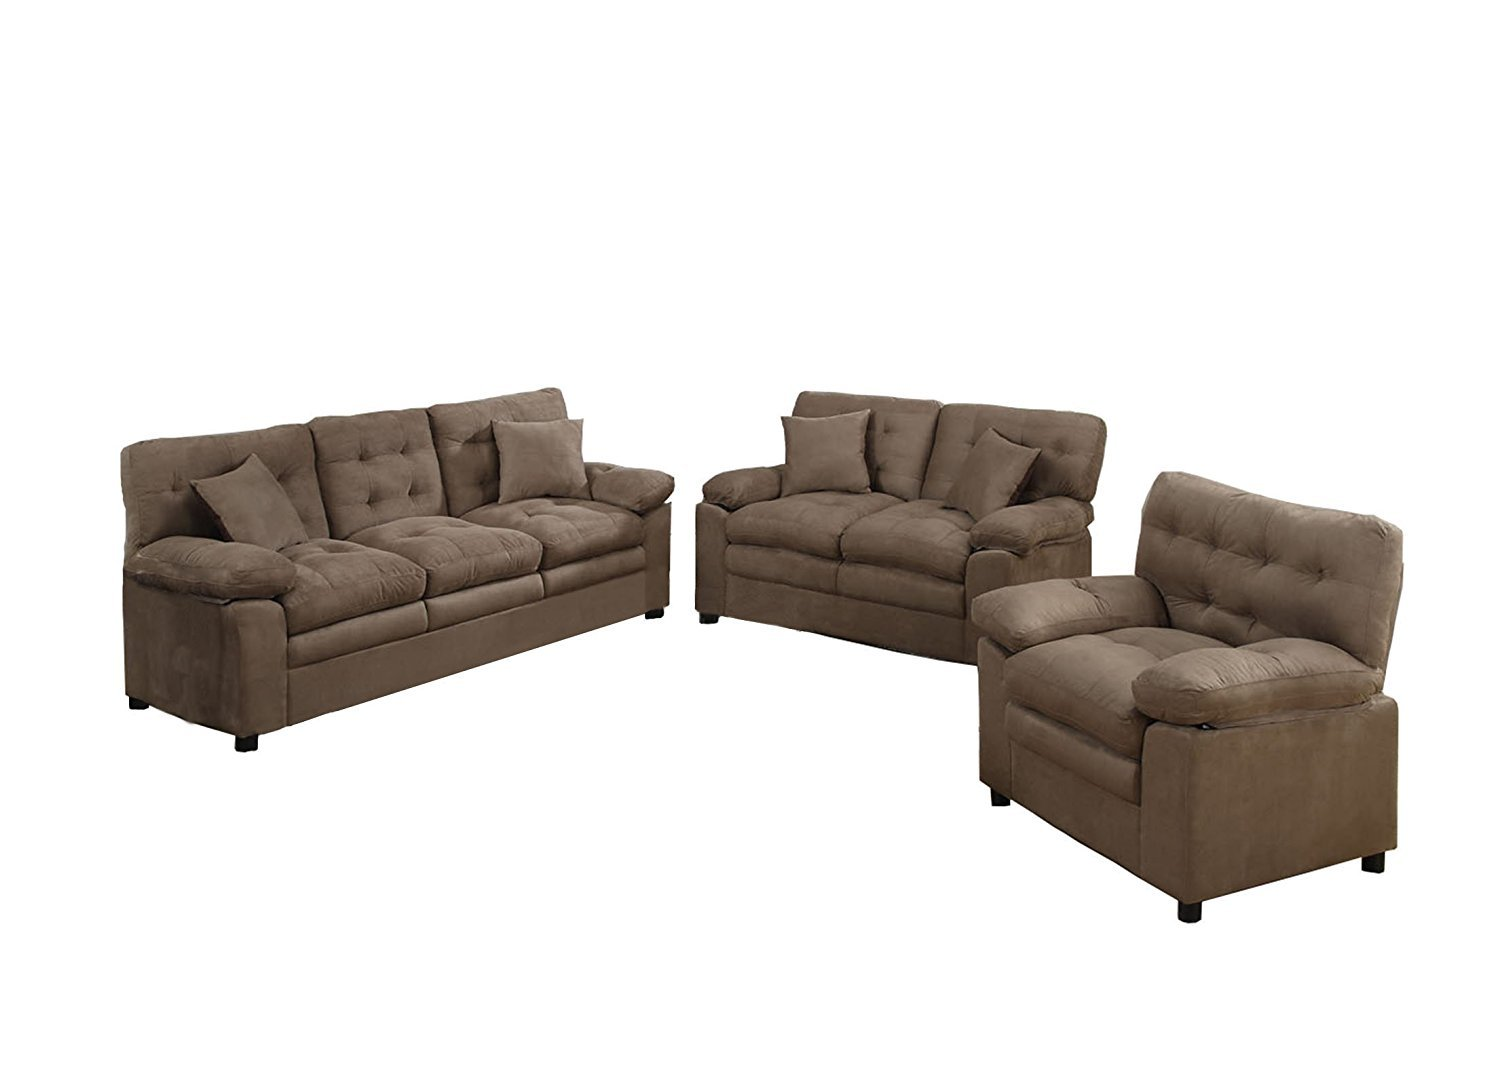 Poundex Bobkona Colona Mircosuede 3 Piece Sofa And Loveseat With Chair Set Home Furniture Design